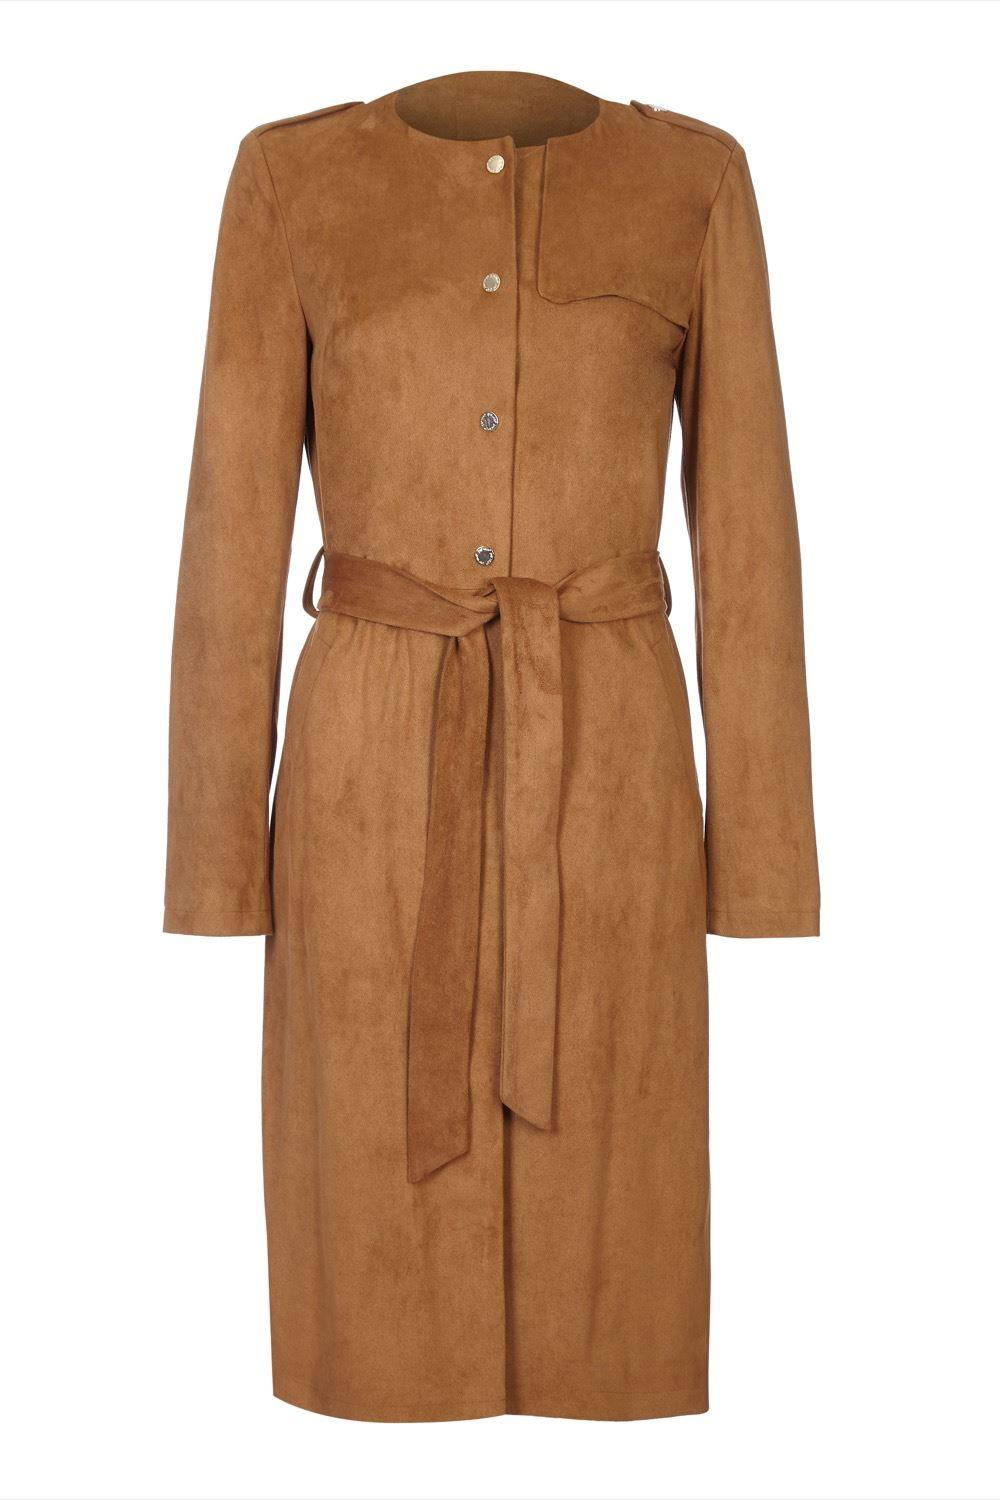 Anastasia Brown Faux Suede Belted Coat